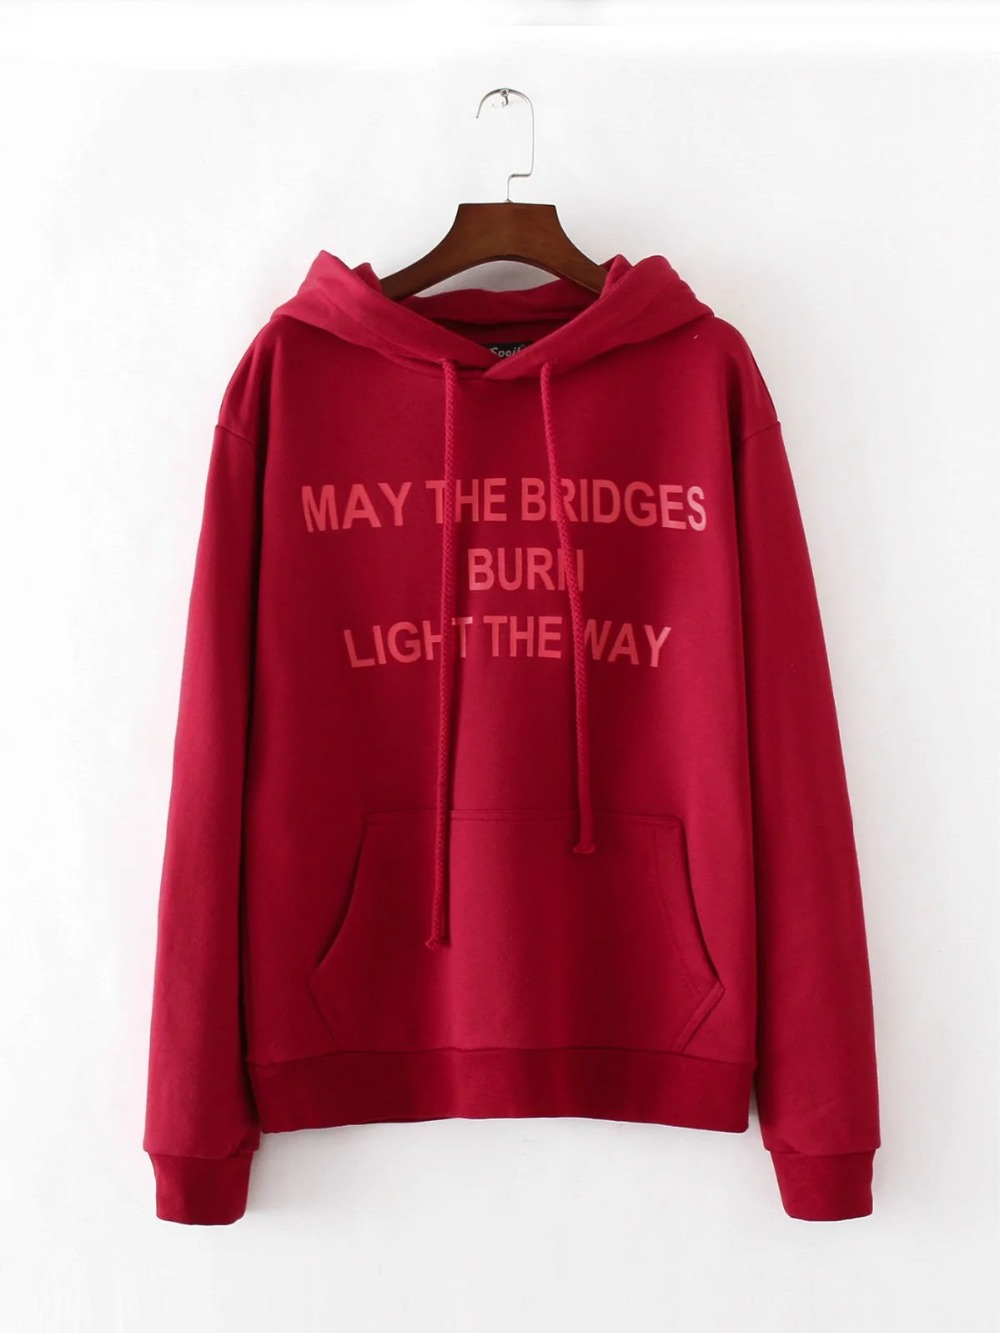 Spring Autumn Women's Red Cotton Print Letter Long Sleeve Novelty Hooded Hoodies Sweatshirts